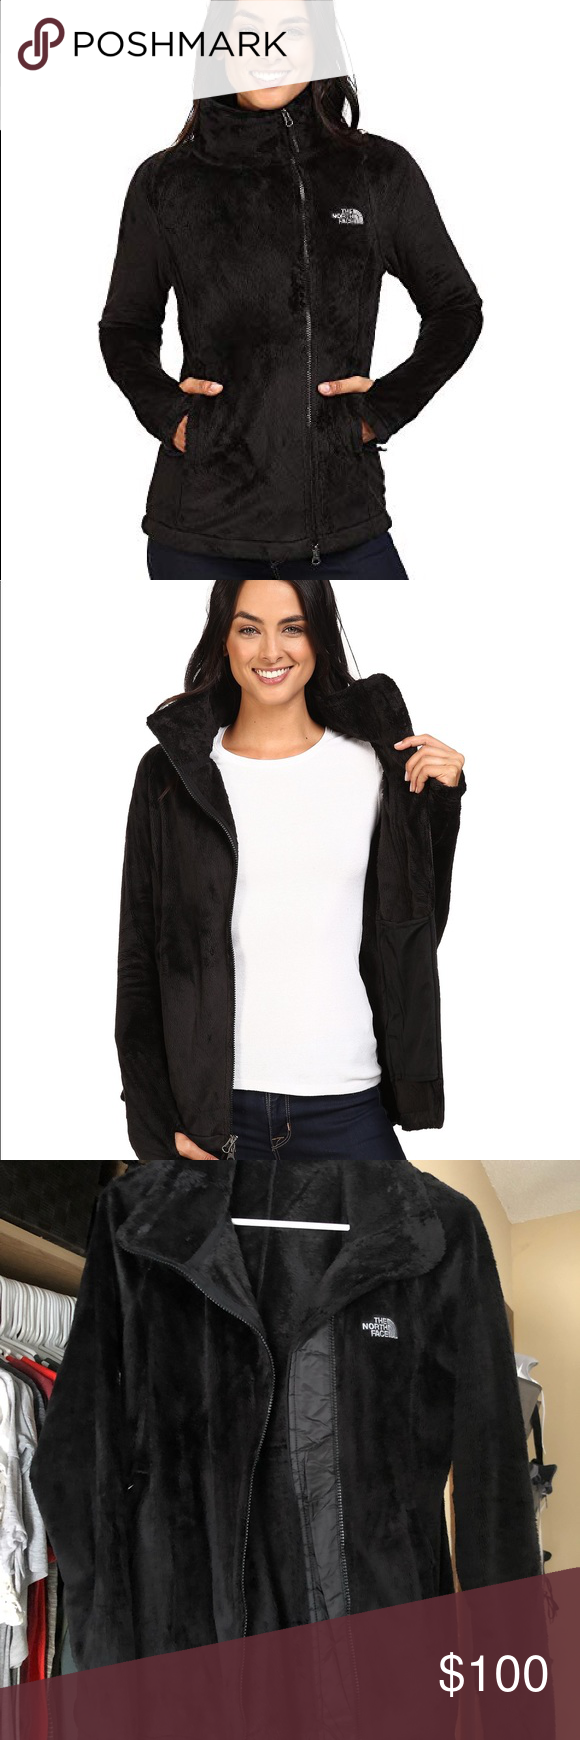 The North Face Women S Osito Parka North Face Women Clothes Design Fashion [ 1740 x 580 Pixel ]